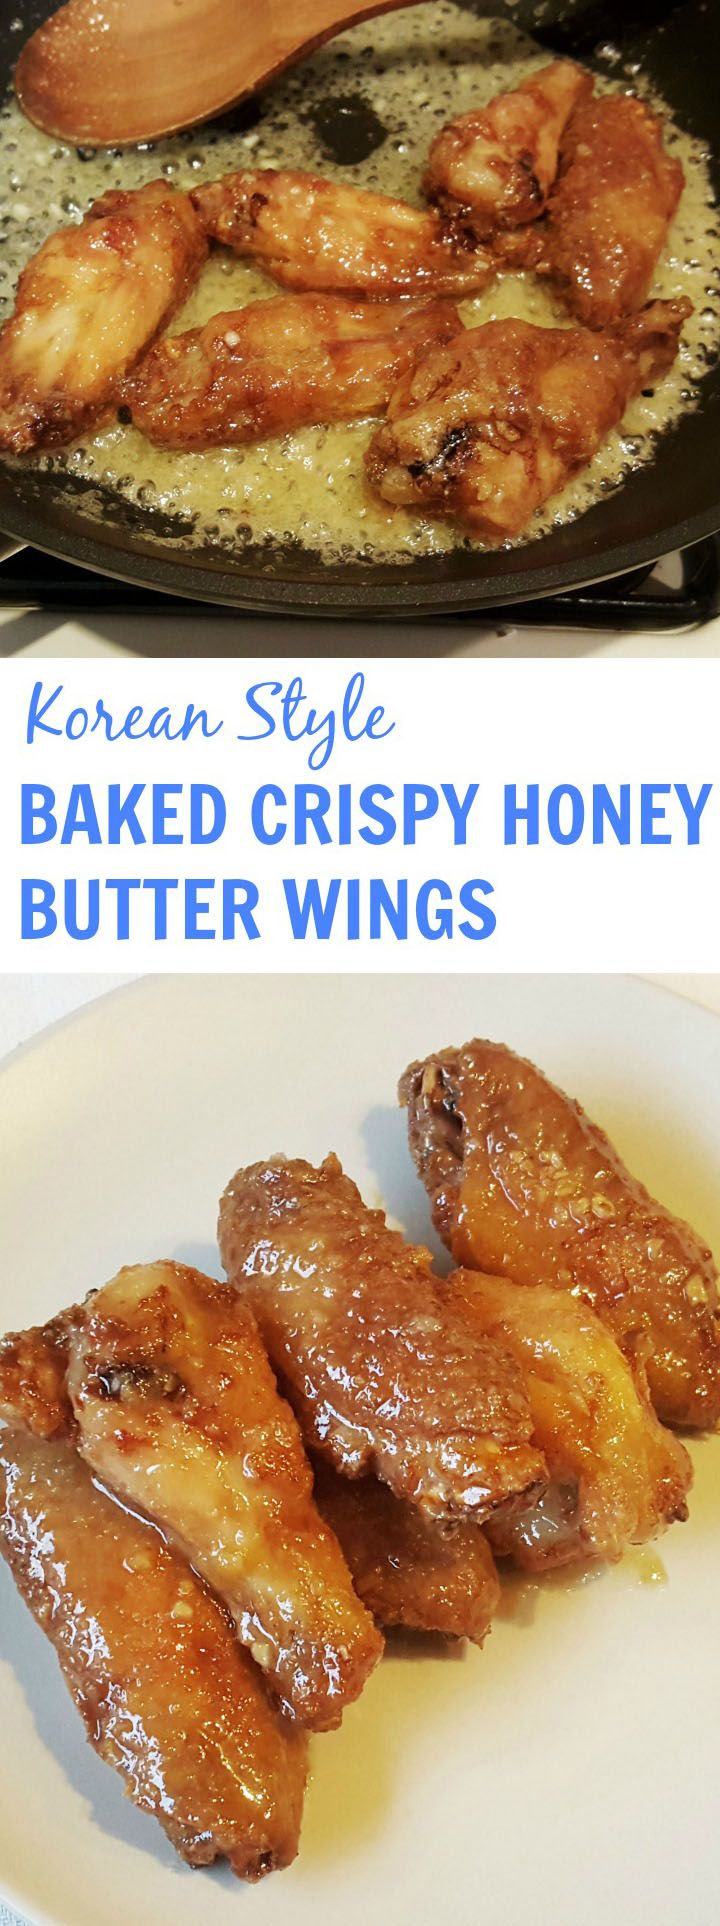 baked crispy honey butter wings